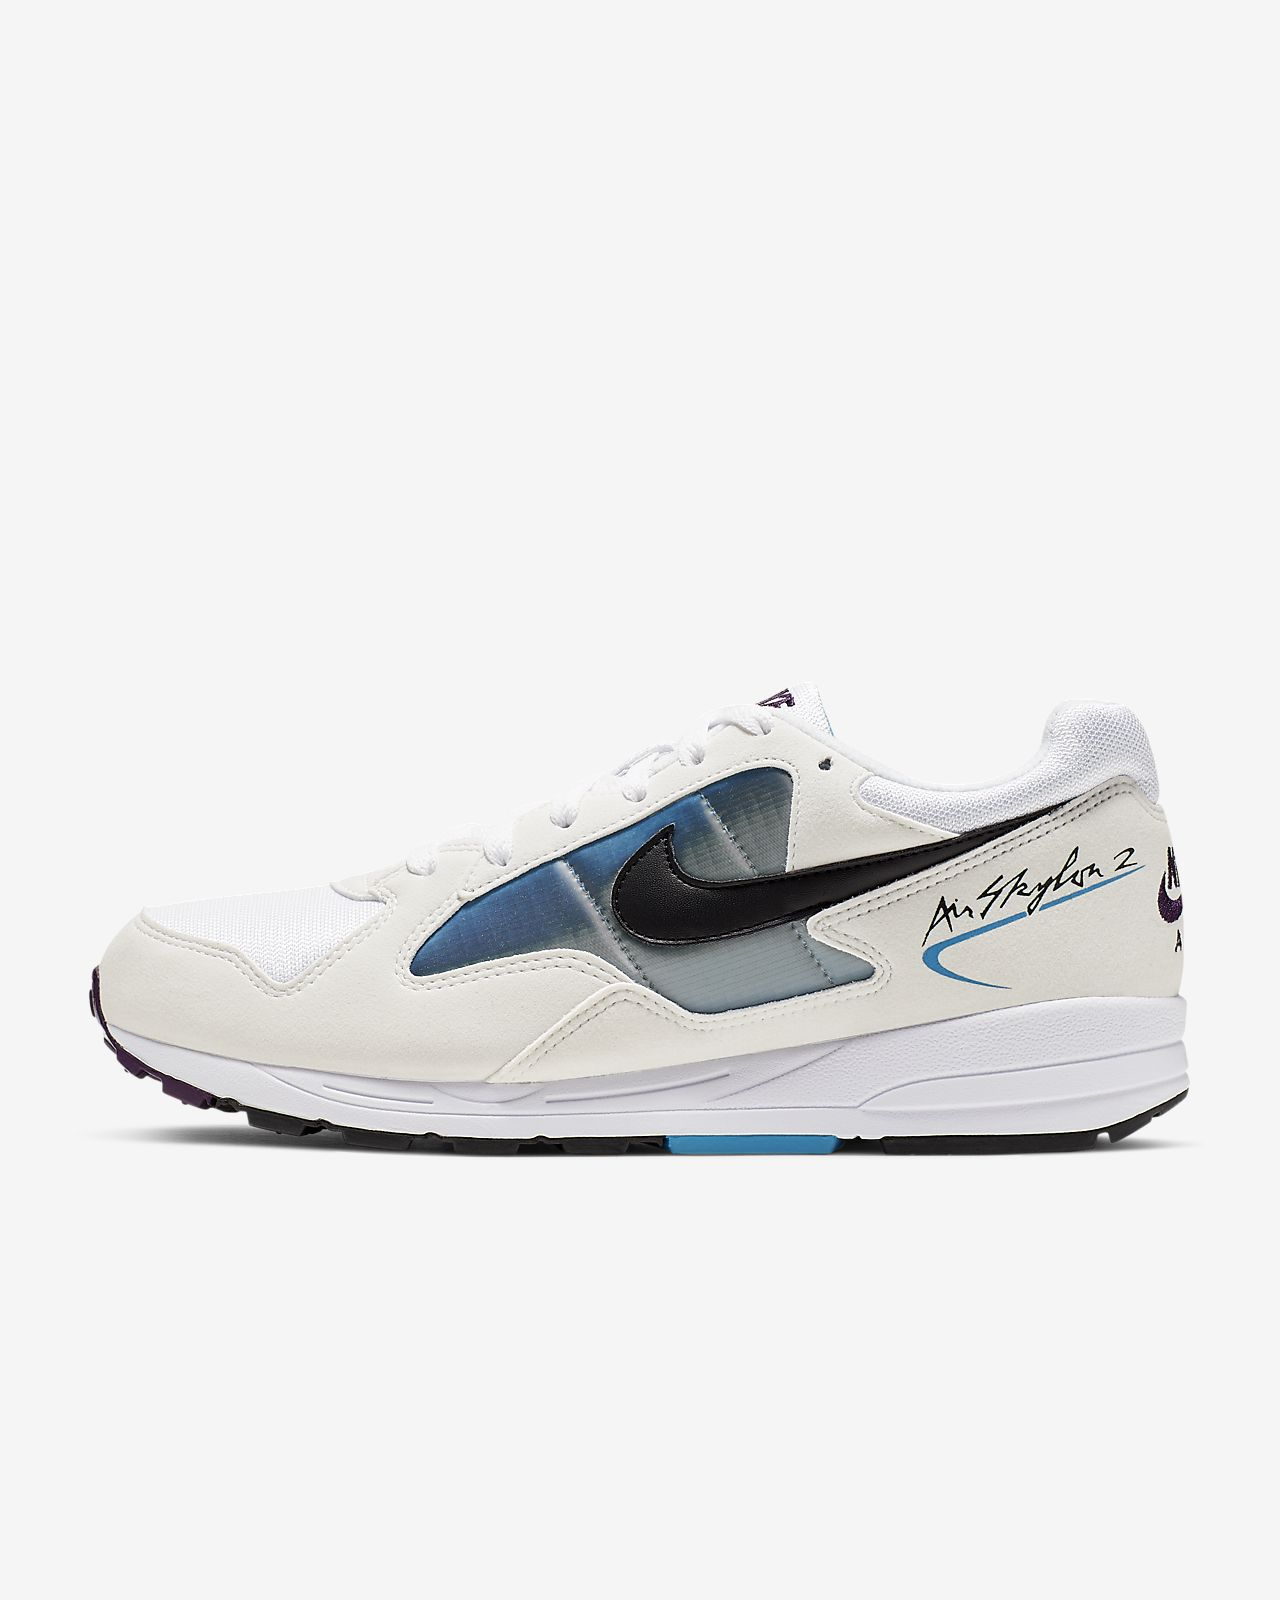 Nike Air Skylon II SE Men's Shoe